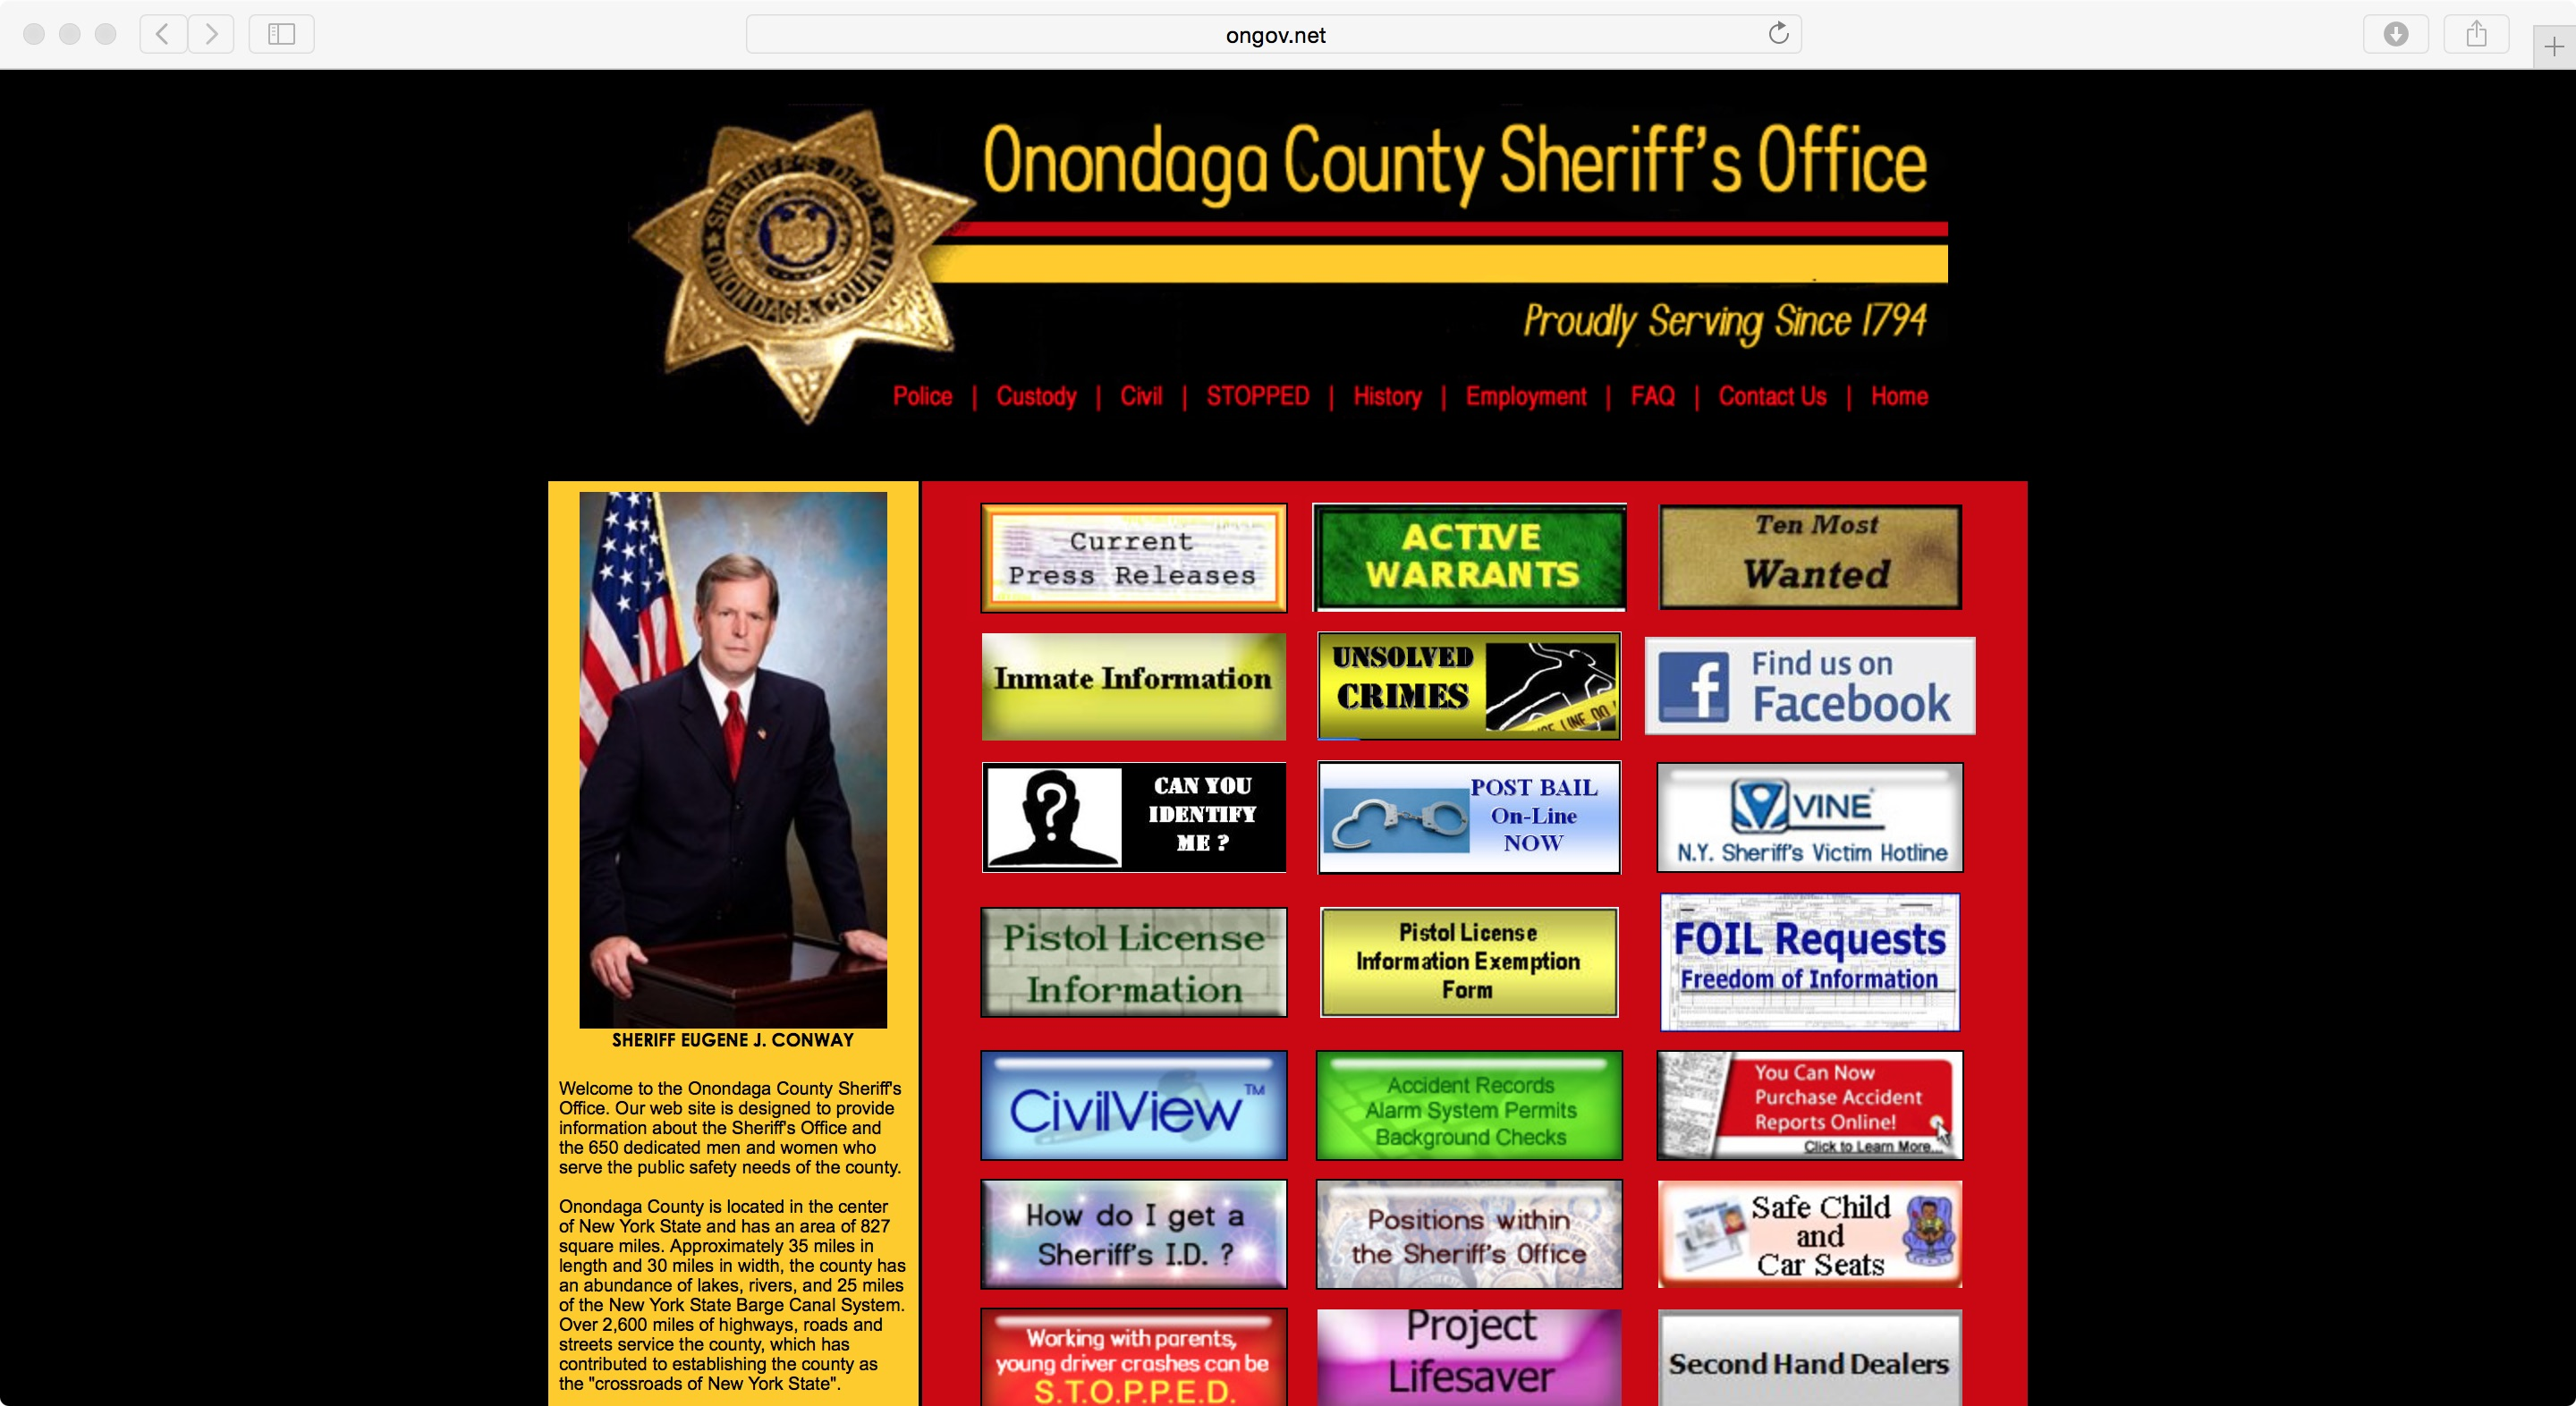 Onondaga County Sheriff old website 12-26-15